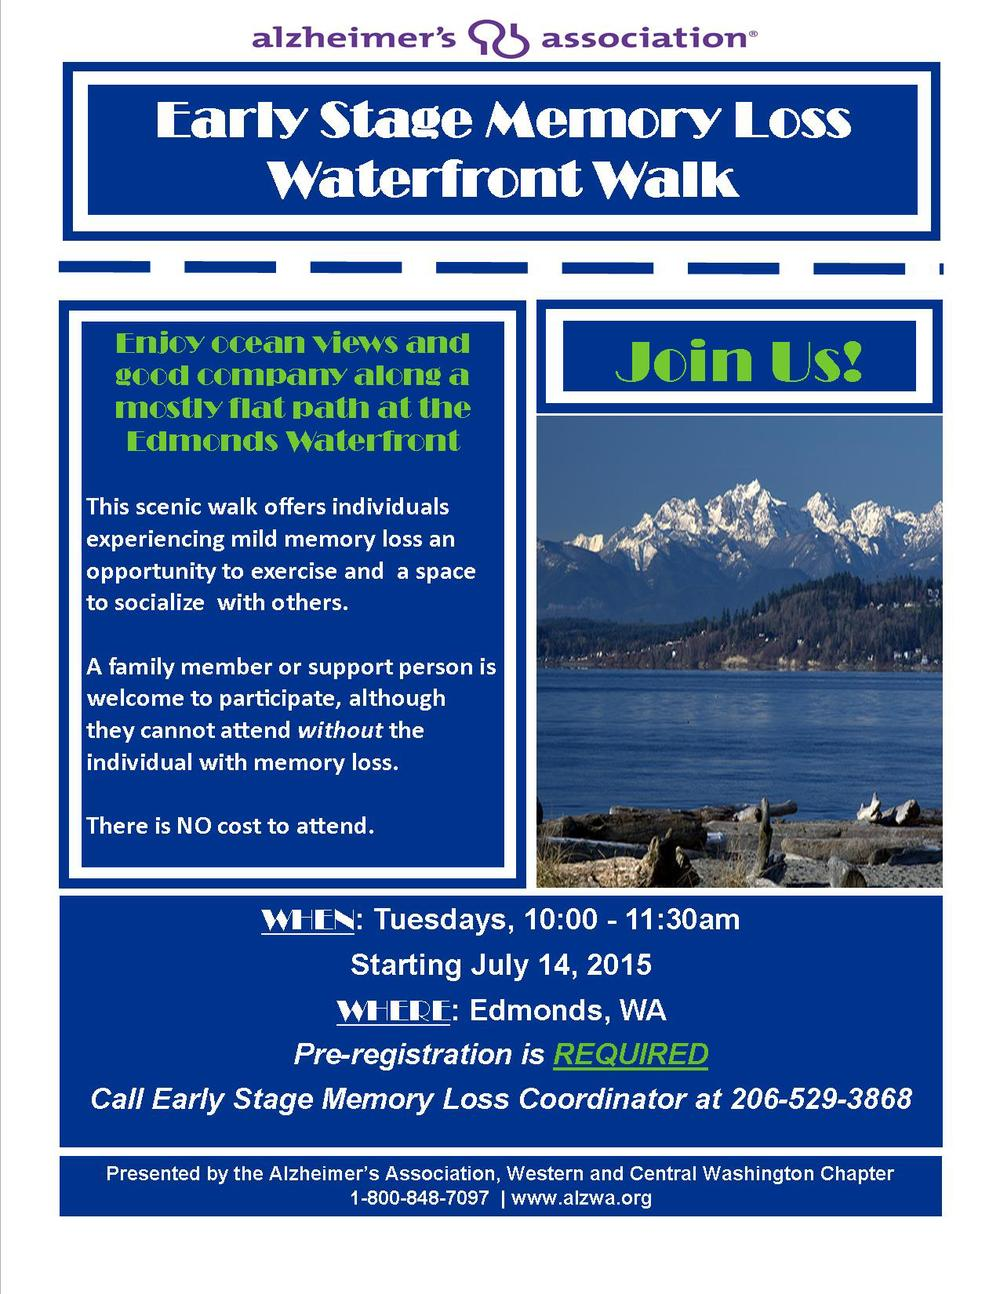 ESML Edmonds Waterfront Walk 2015.jpg